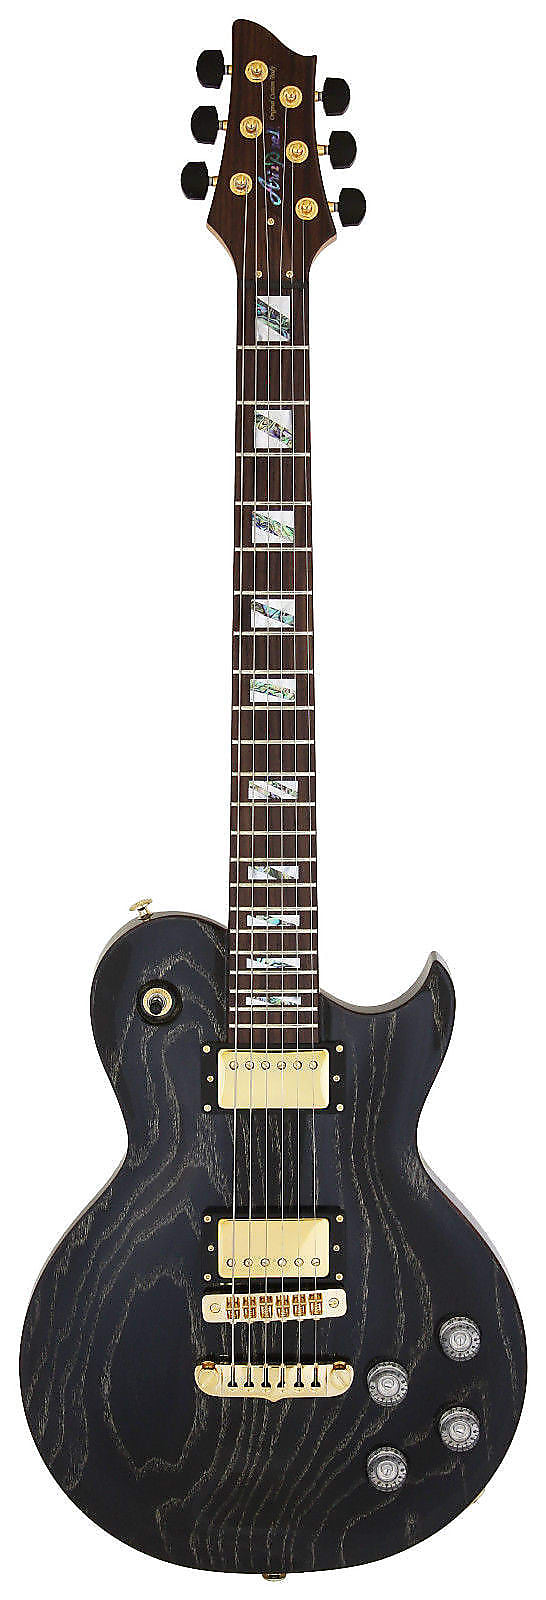 NEW ARIA PRO II - PE-LUX BLACK & GOLD STAINED ELECTRIC GUITAR